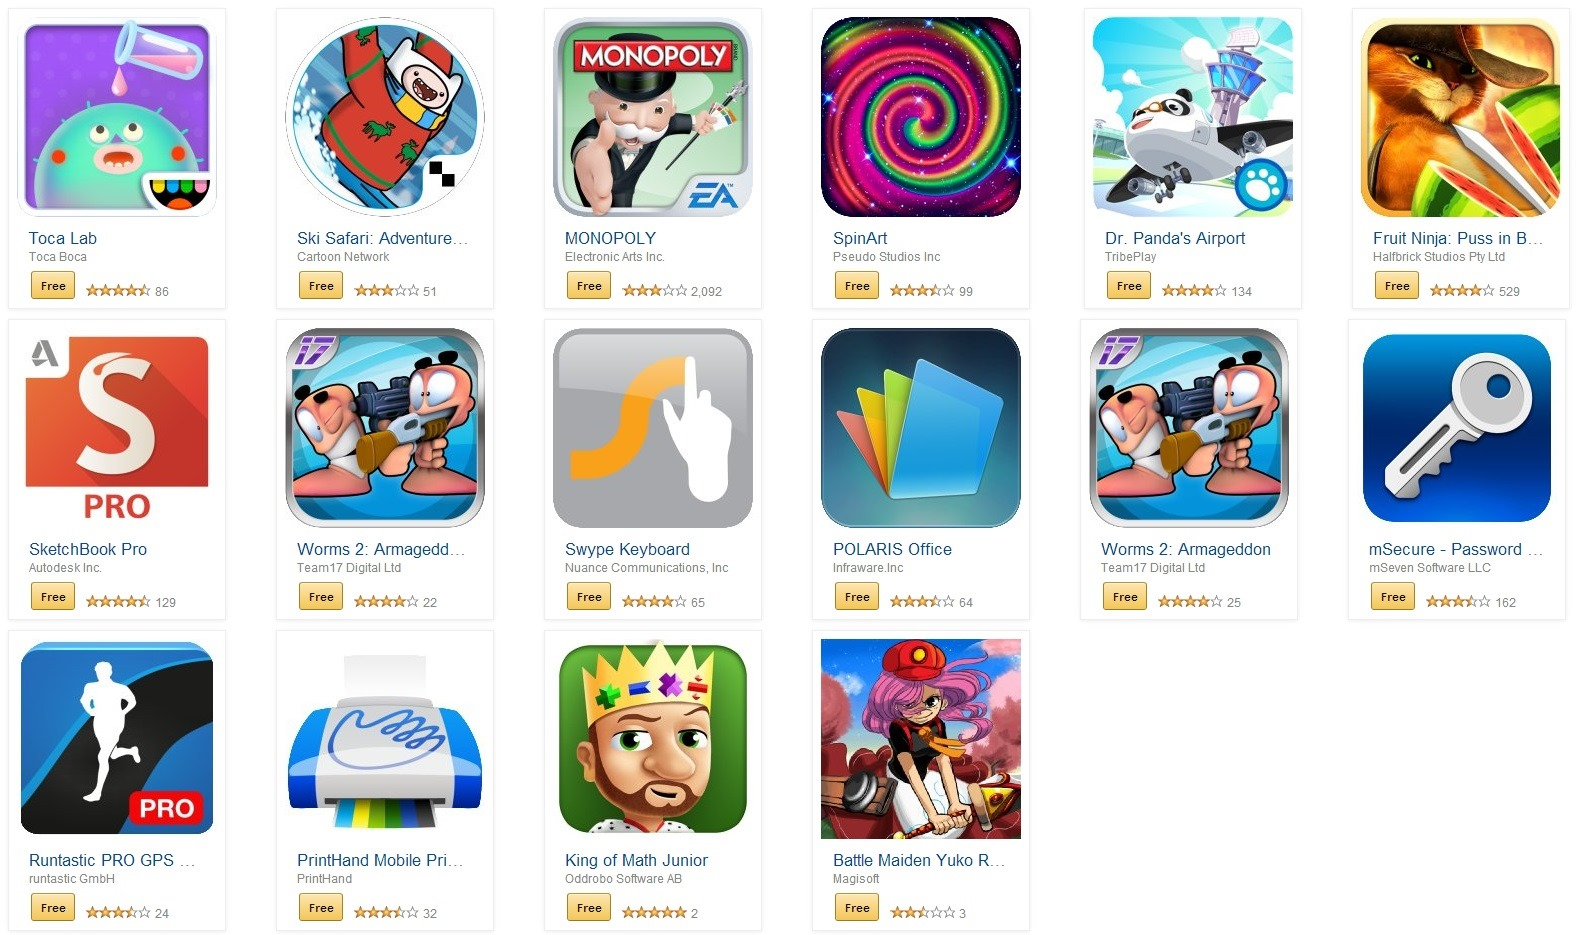 [Deal Alert] Amazon Offering Over $50 Worth Of Free Apps In An Appstore Hits Bundle Now Through Saturday